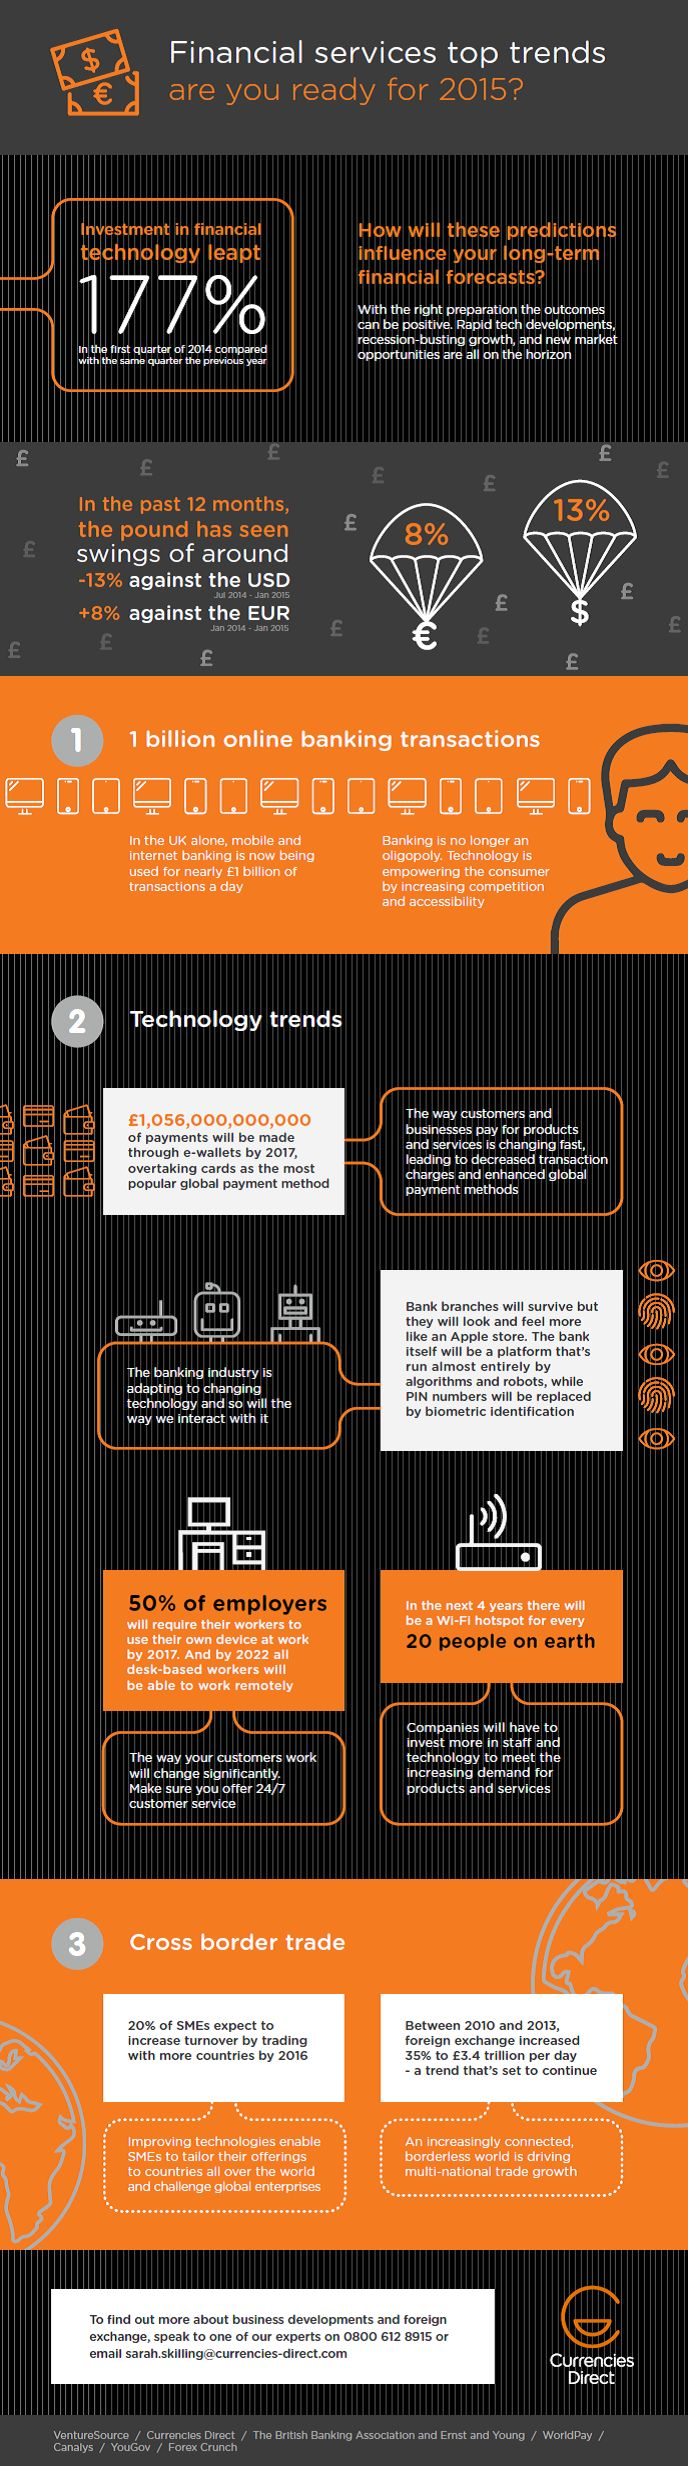 Infographic: Financial services top trends - are you ready for 2015? http://www.currenciesdirect.com/en/uk/news/financial-services-top-trends-are-you-ready-for-20